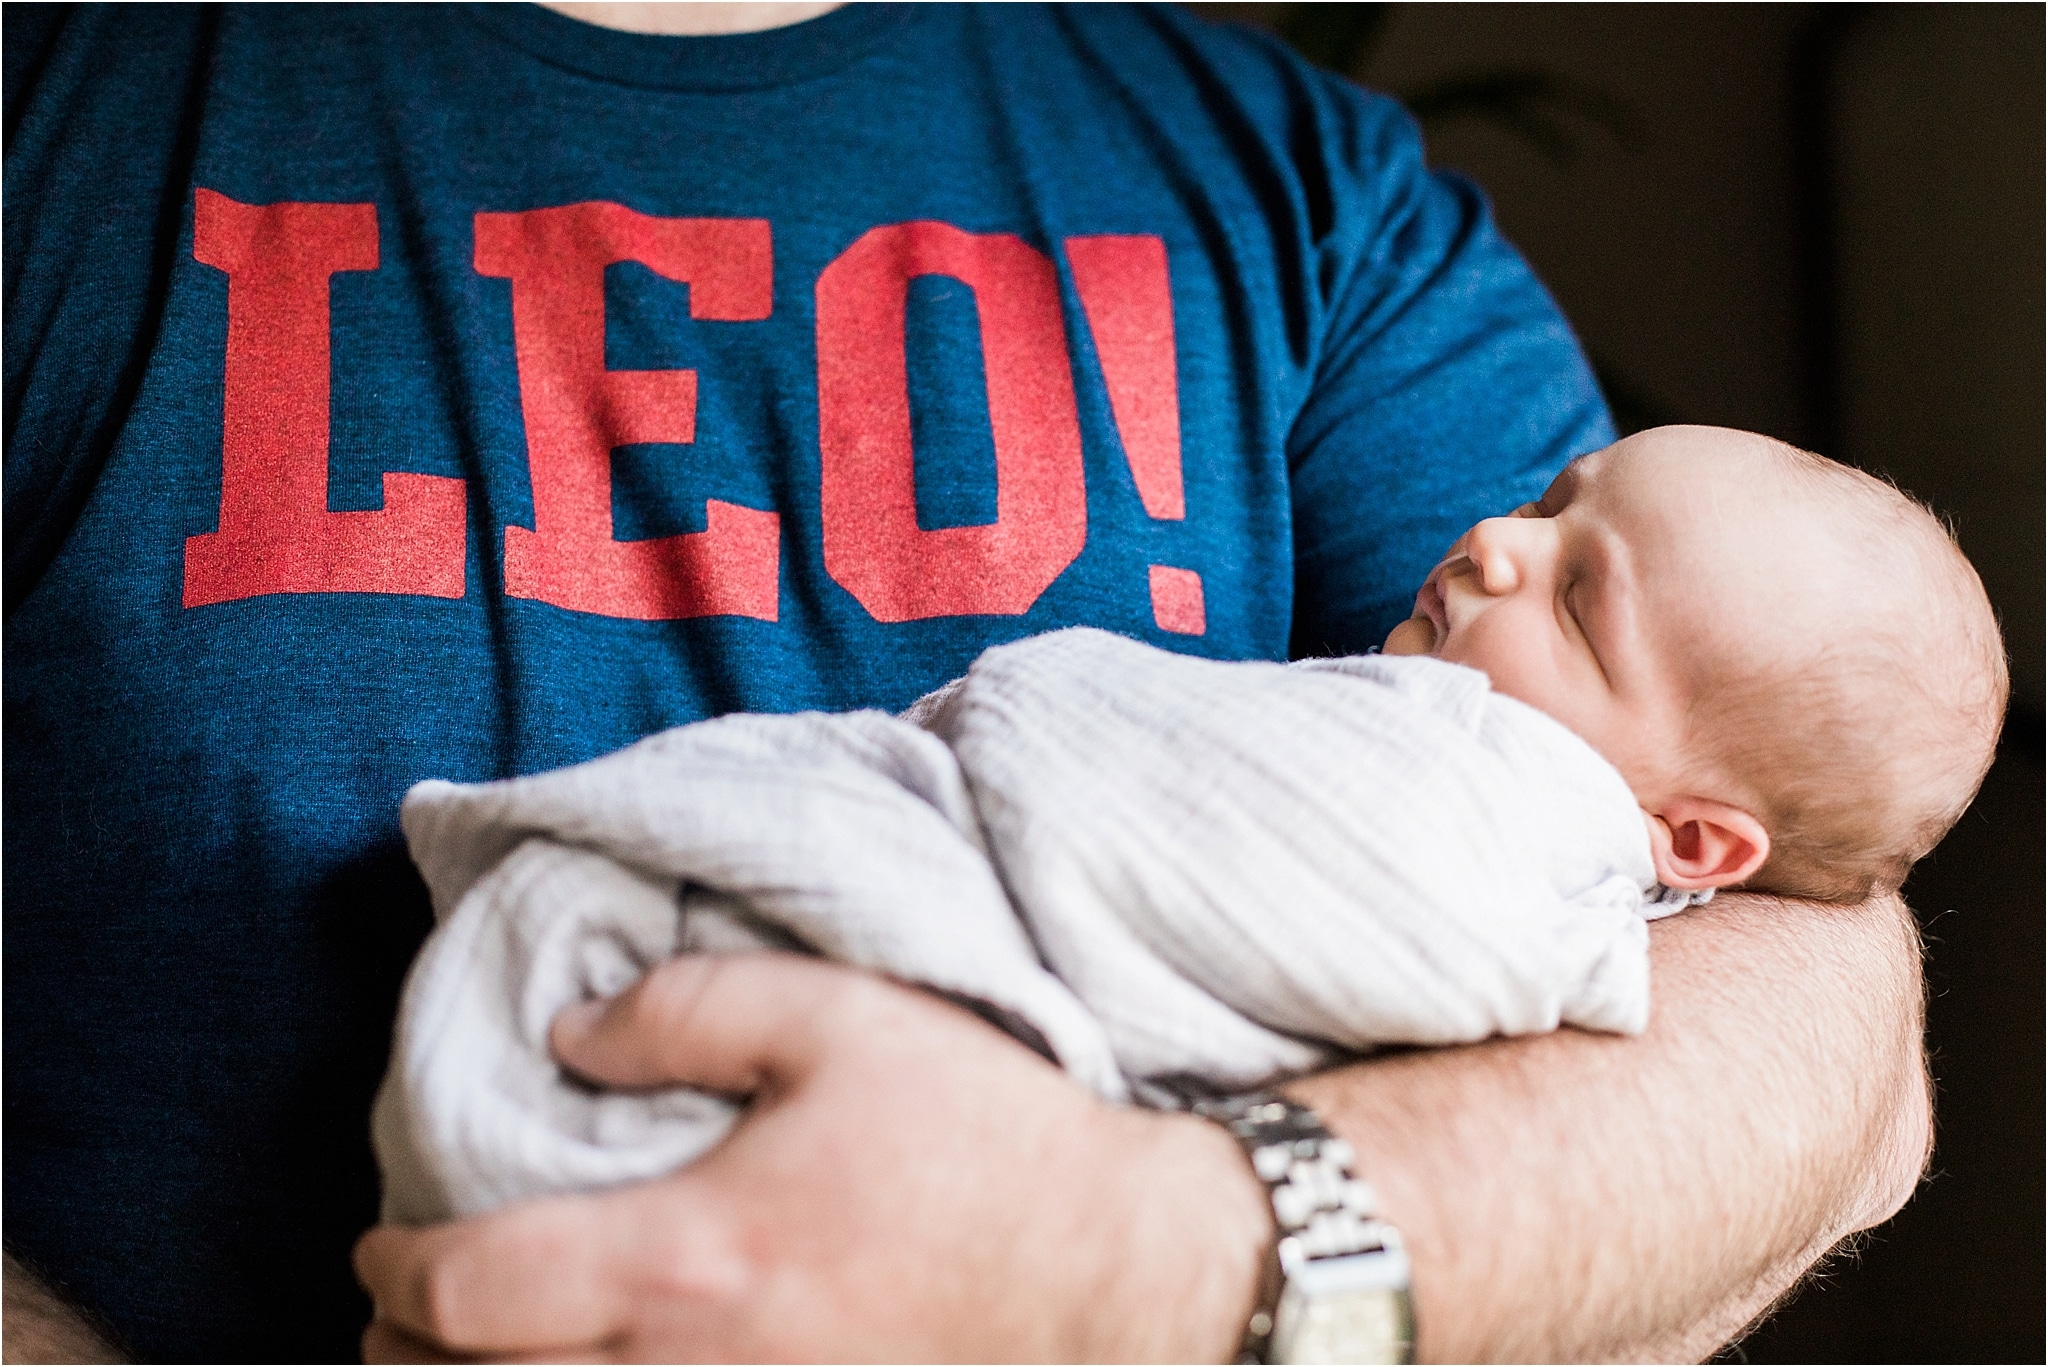 fathers arms holding newborn